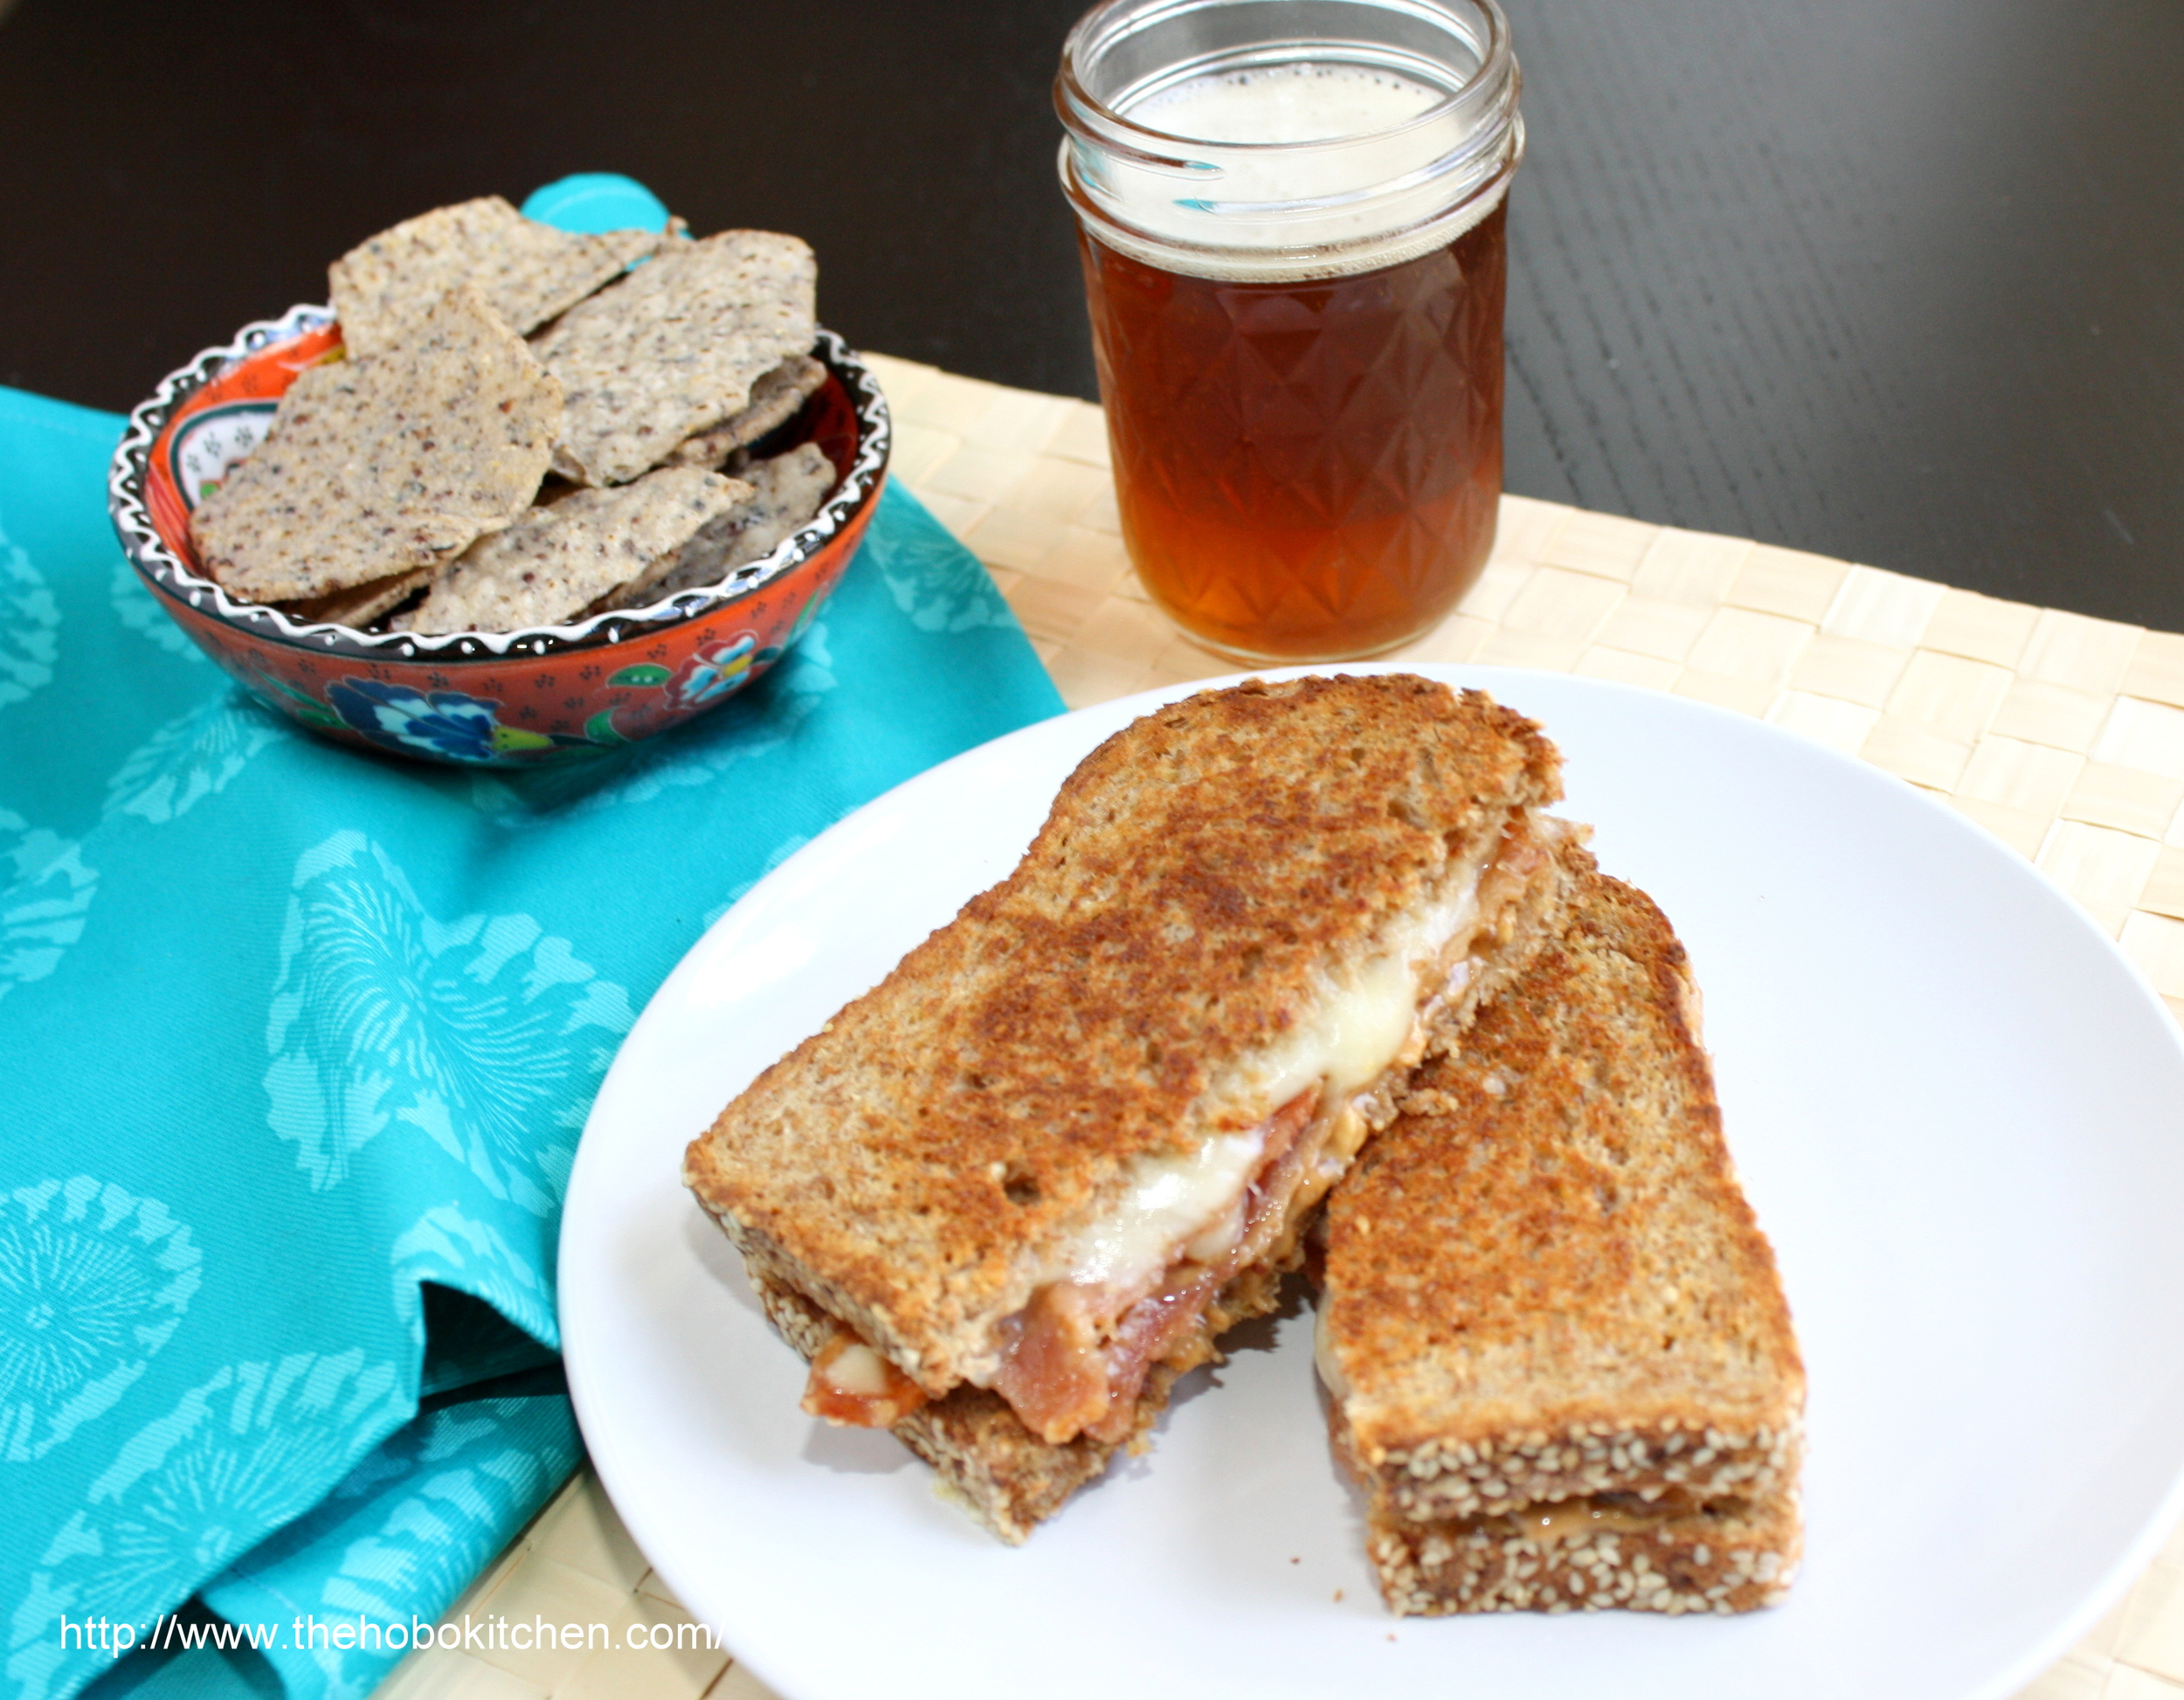 Peanut Butter Bacon Grilled Cheese The Hobo Kitchen